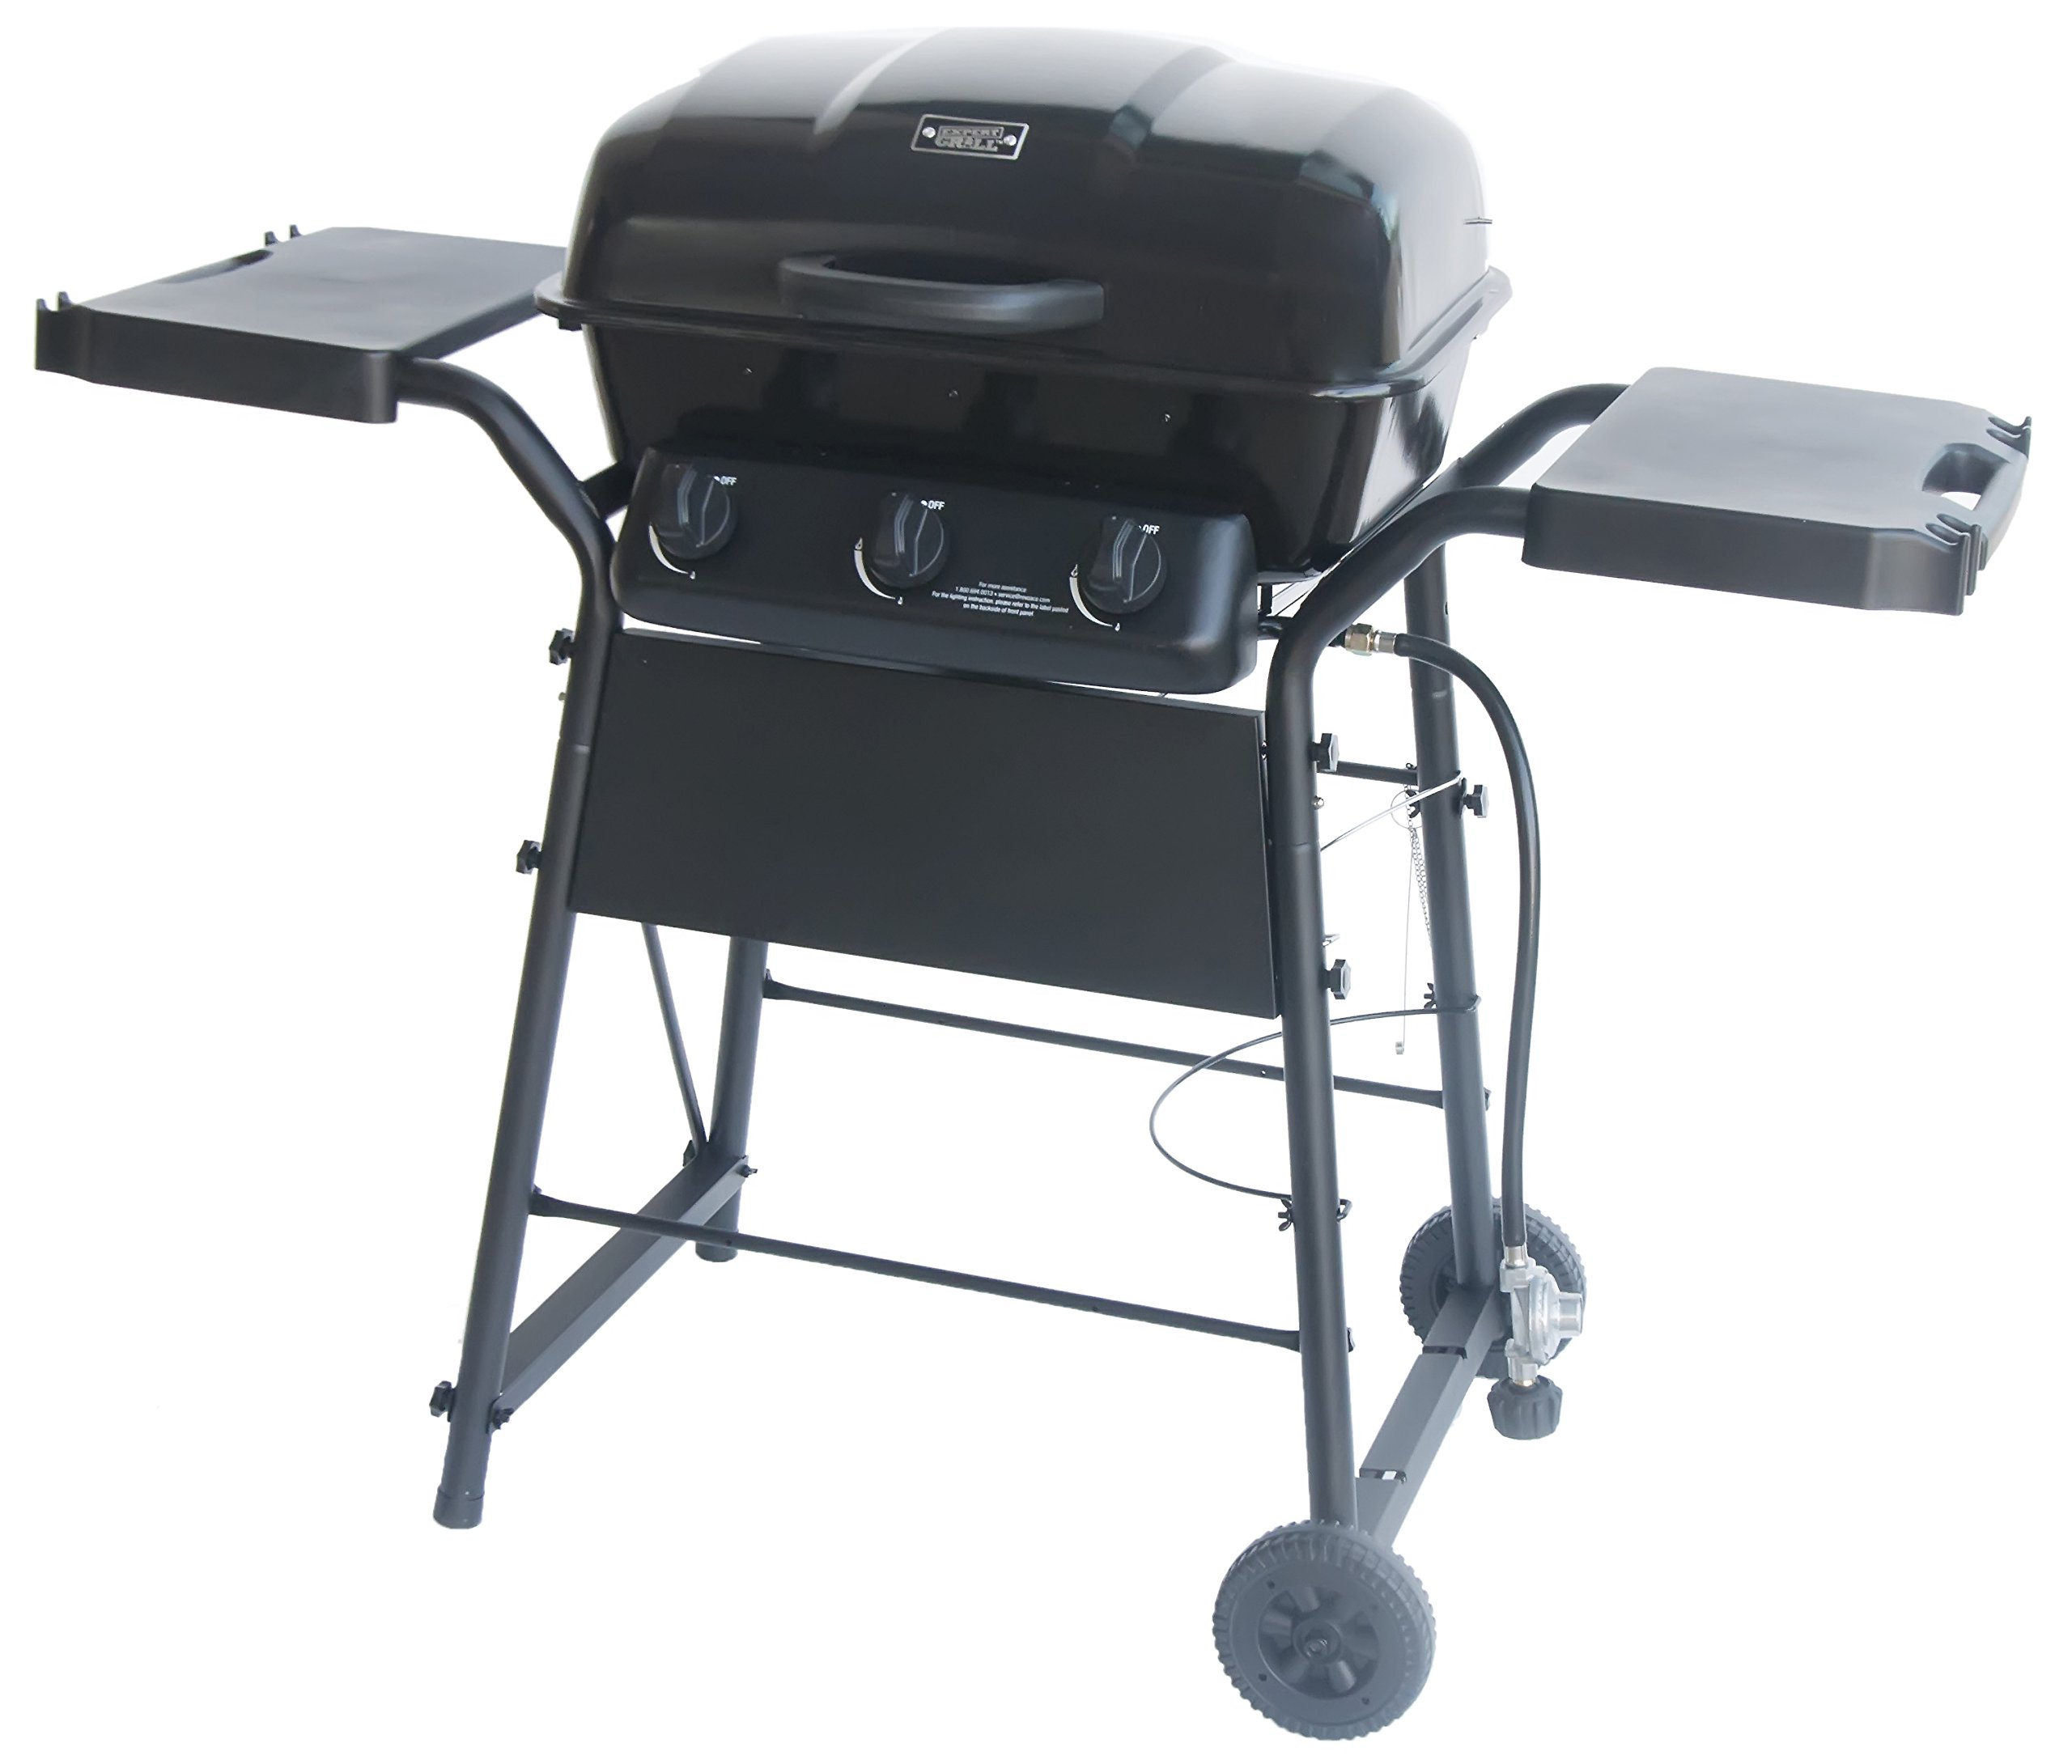 Gas Grill 3 Burner Space Saver by Expert Grill